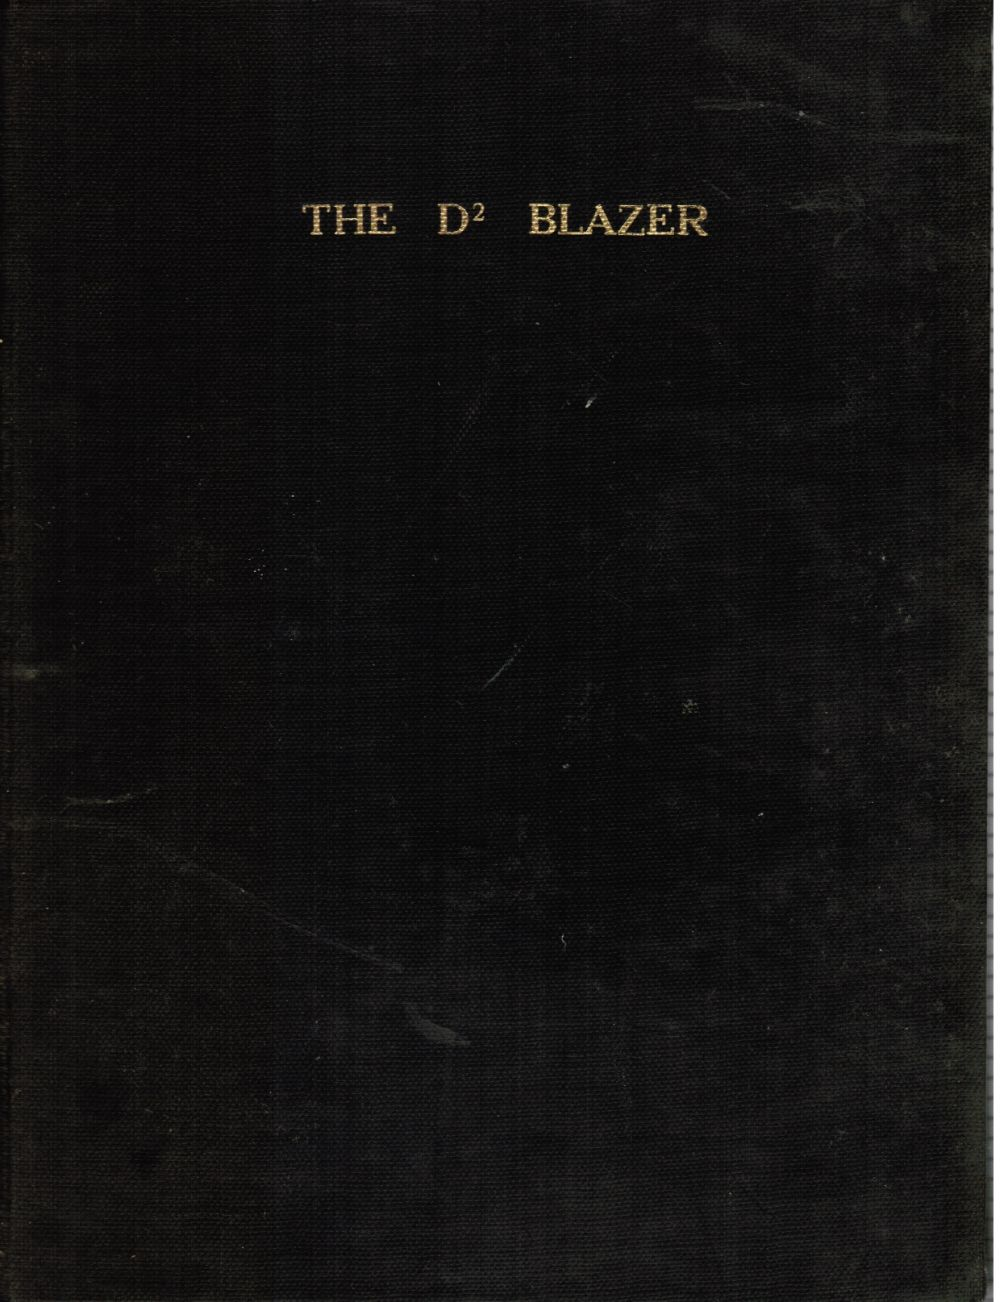 Image for THE D2 Blazer (Baltimore City College) Yearbook